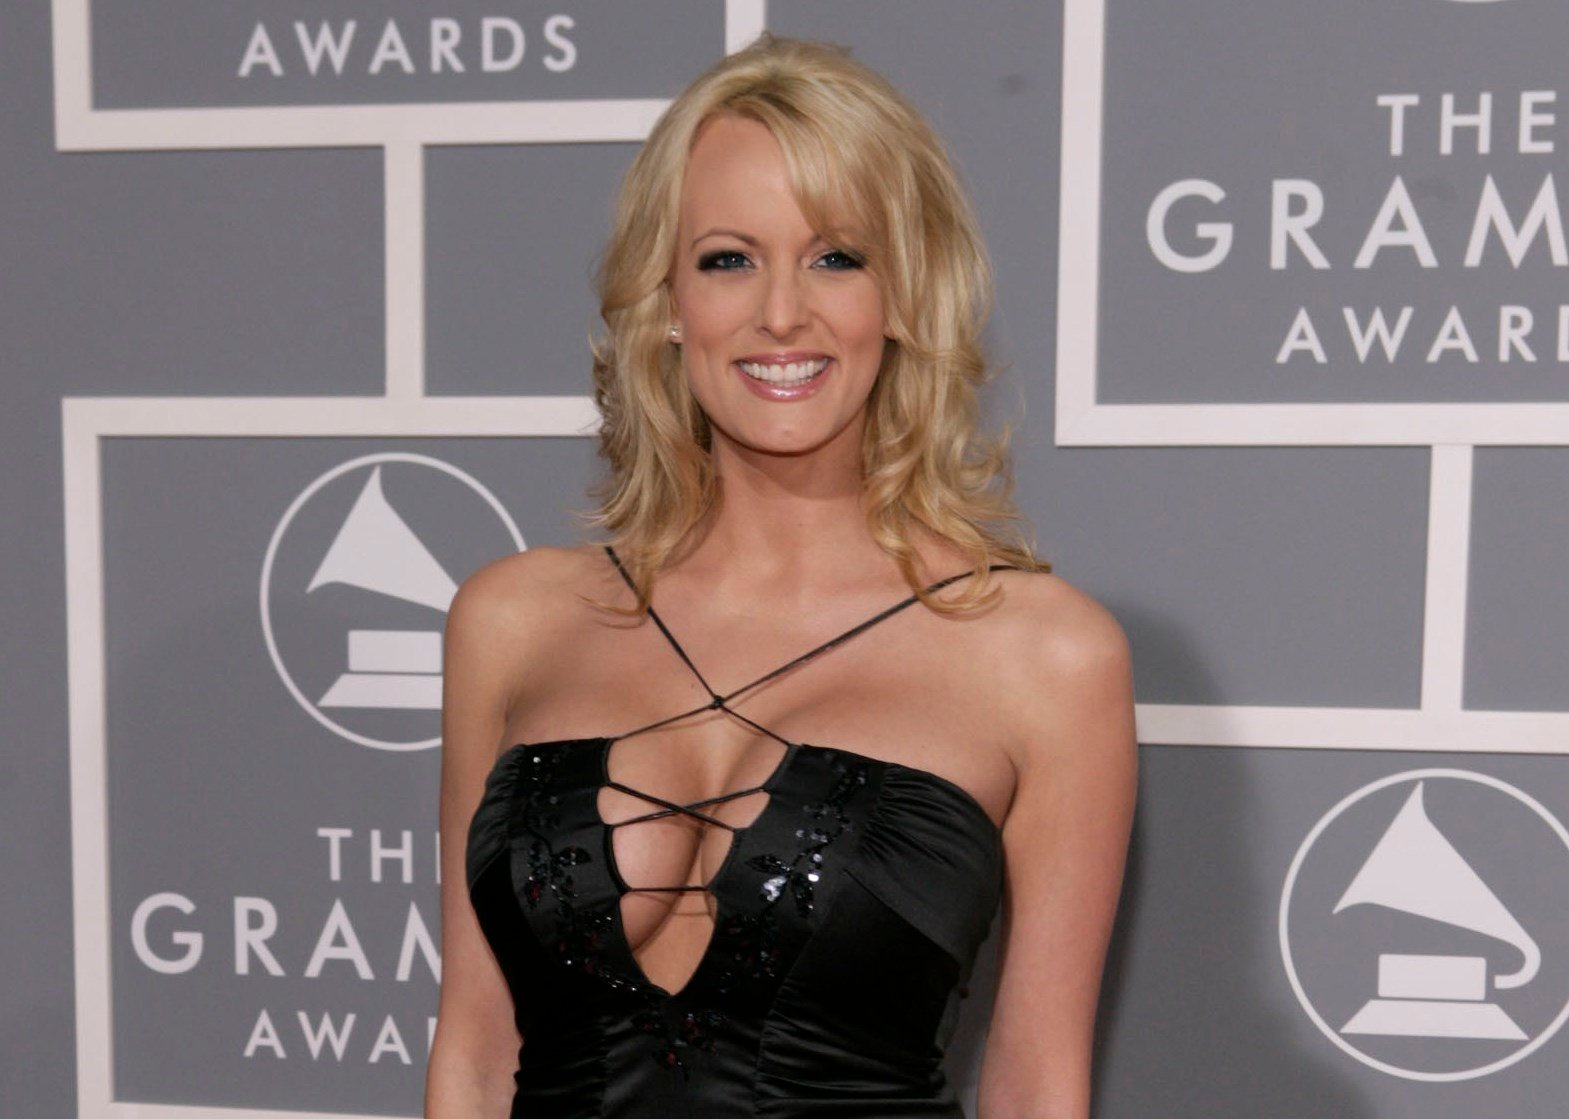 Docs link Trump Org lawyer to effort to silence porn star